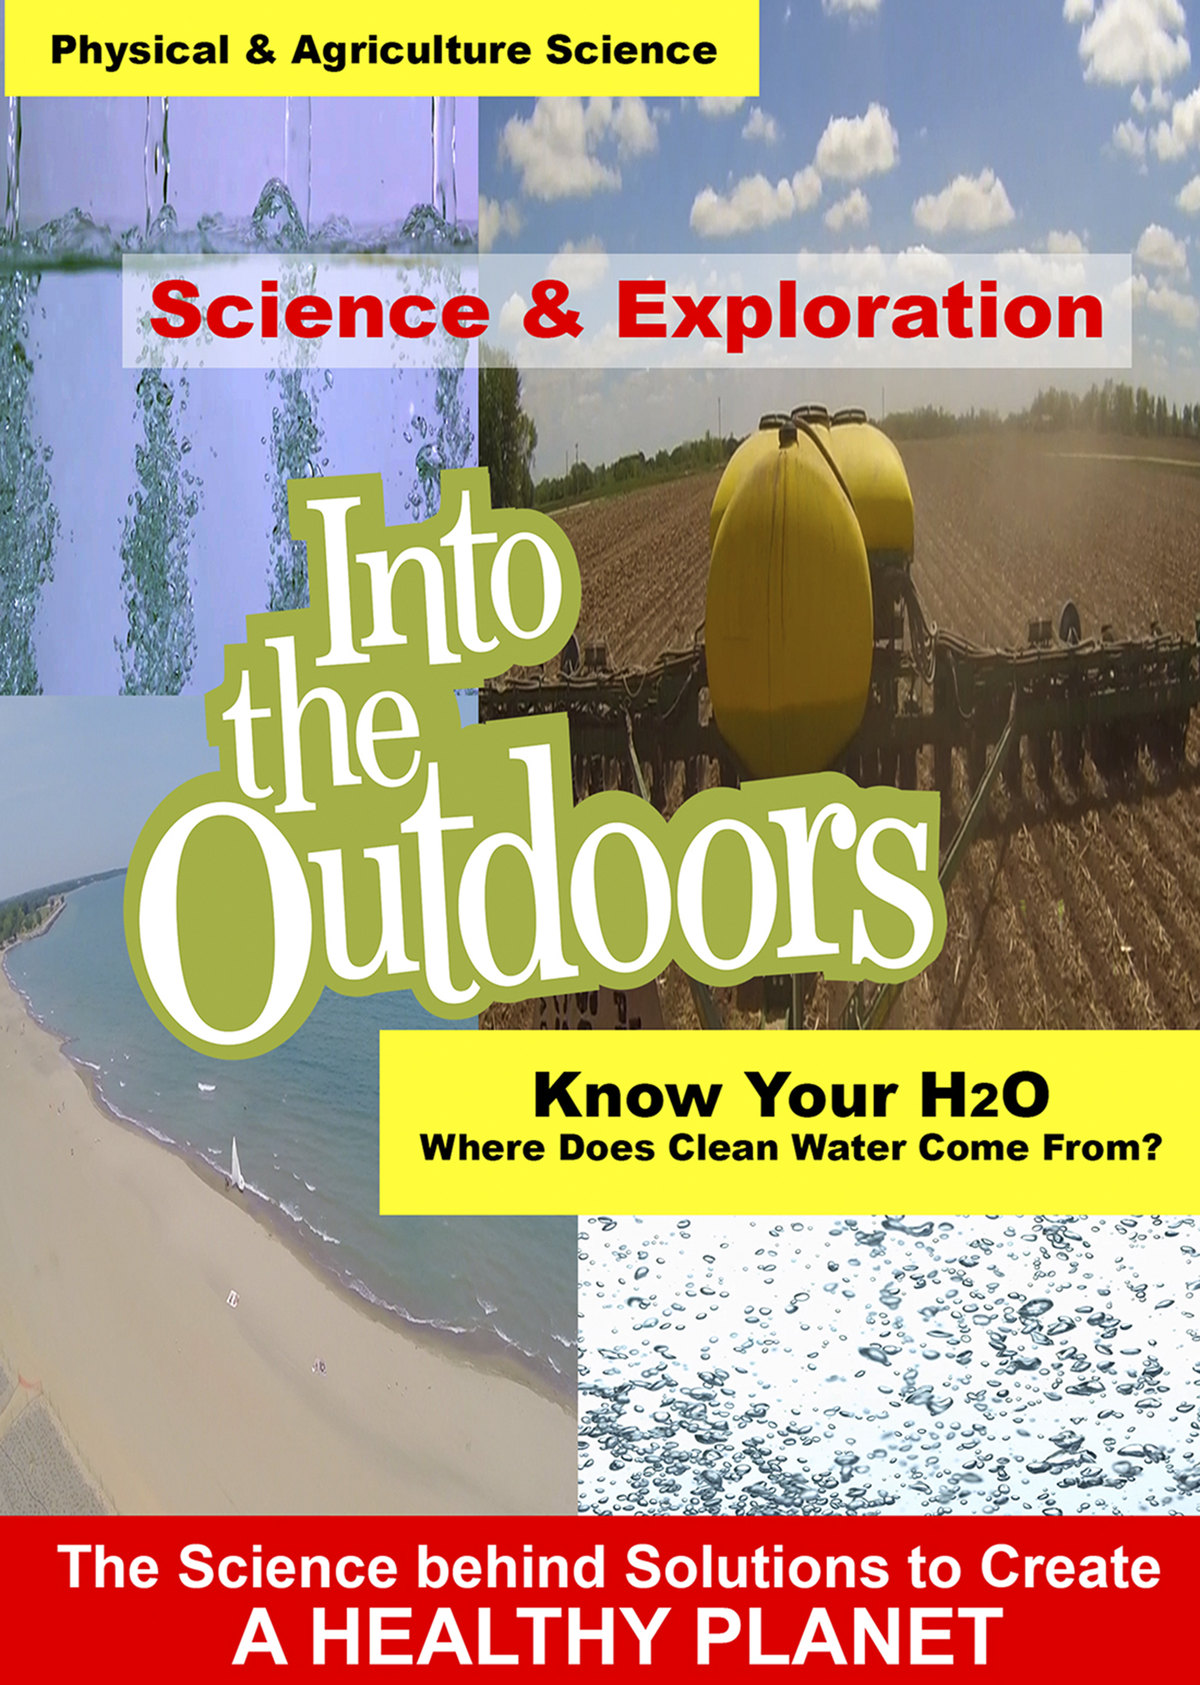 K4971 - Know Your H2O - Where Does Clean Water Come From?